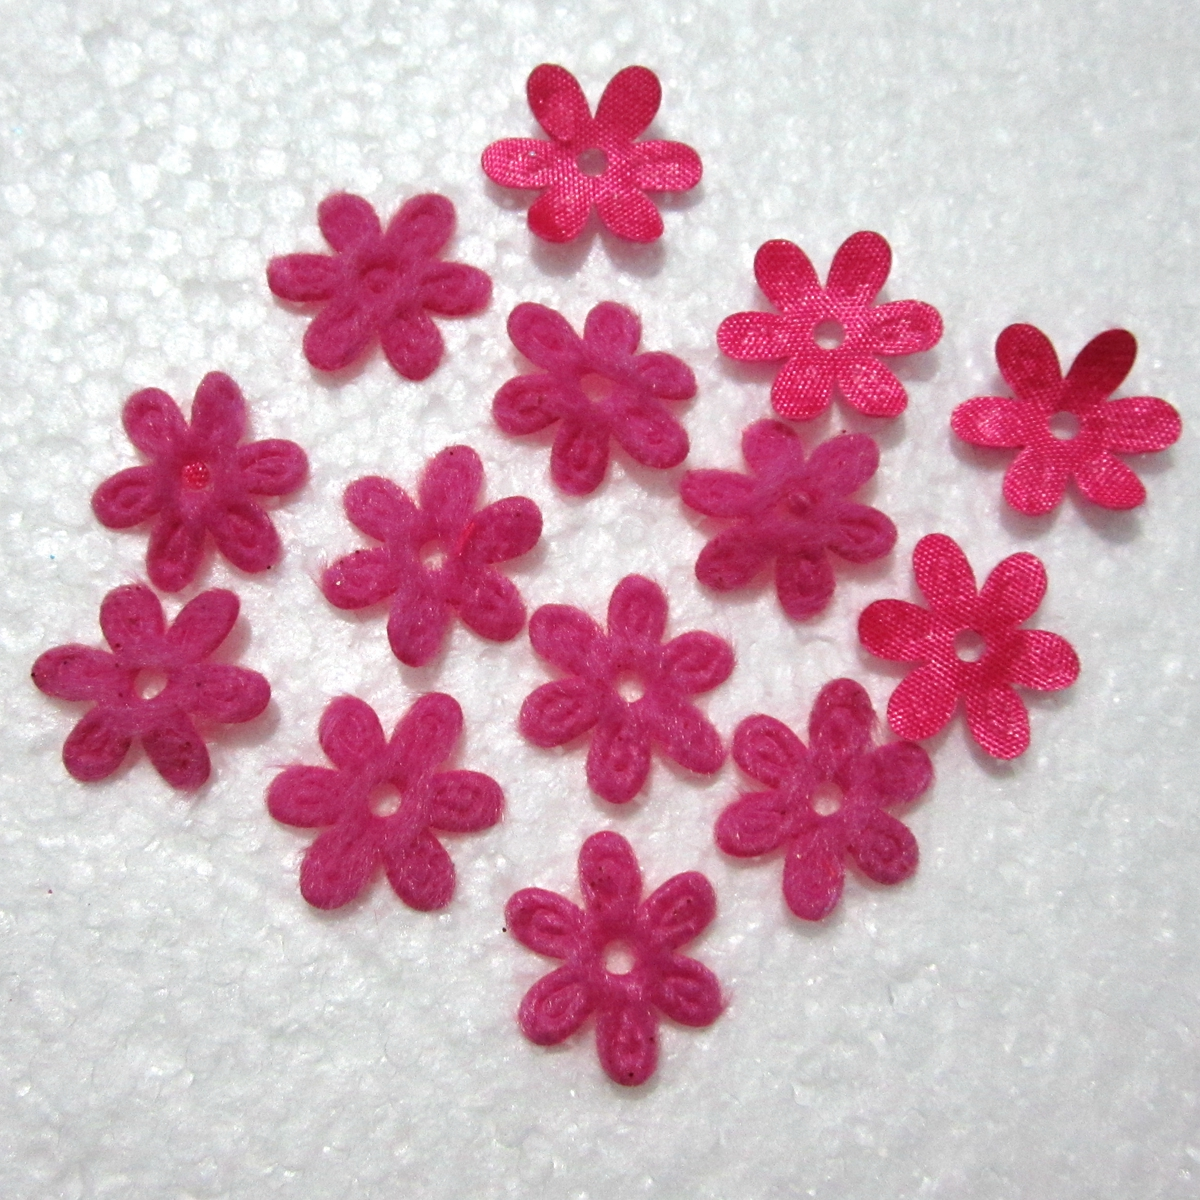 Diy craft 500pcs 15mm padded felt spring flower appliques wedding decoration A294*5